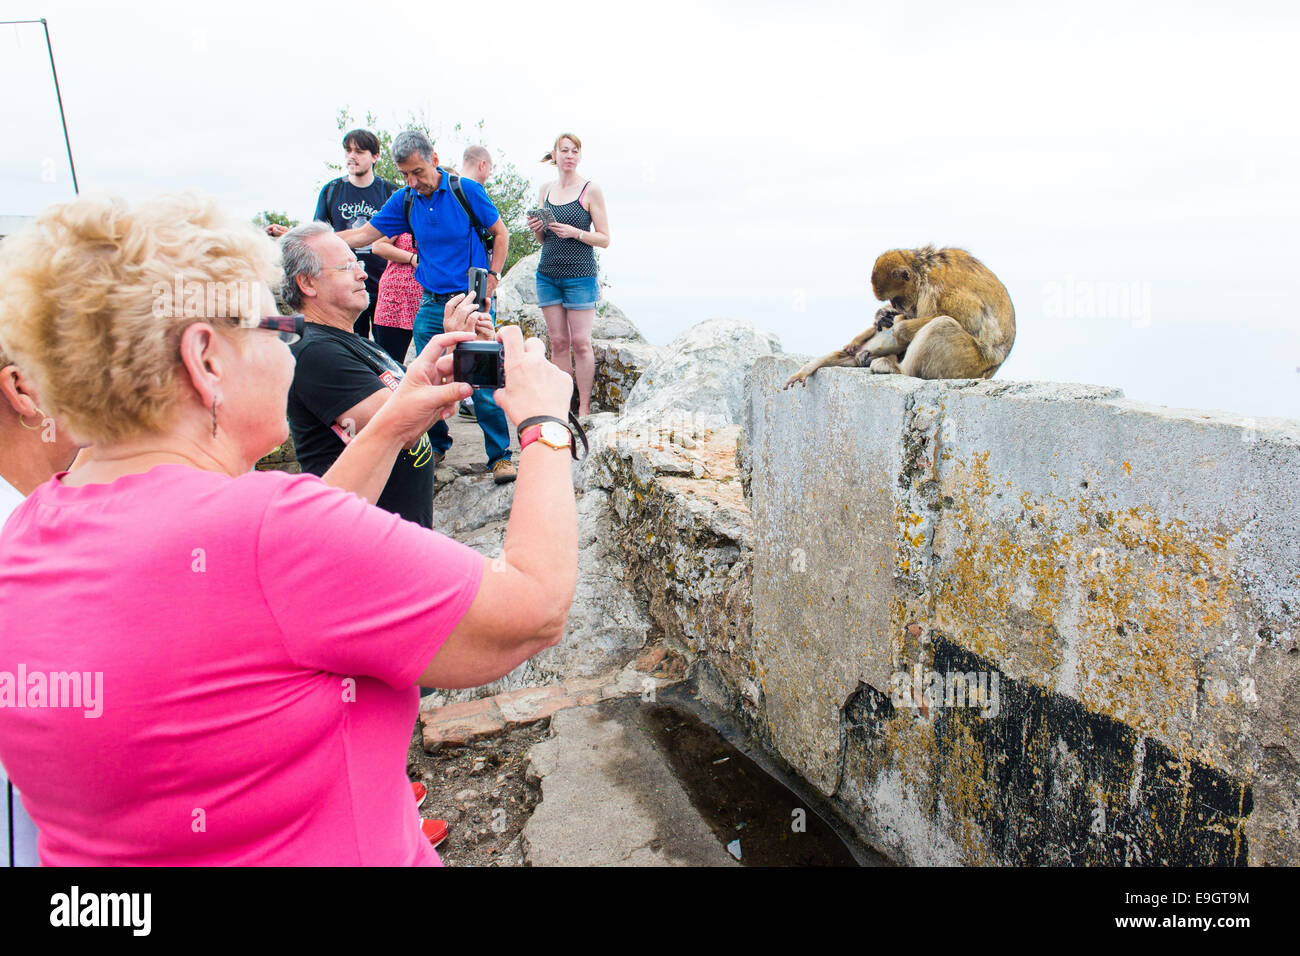 Tourists photographing the monkeys on the Rock of Gibraltar. - Stock Image